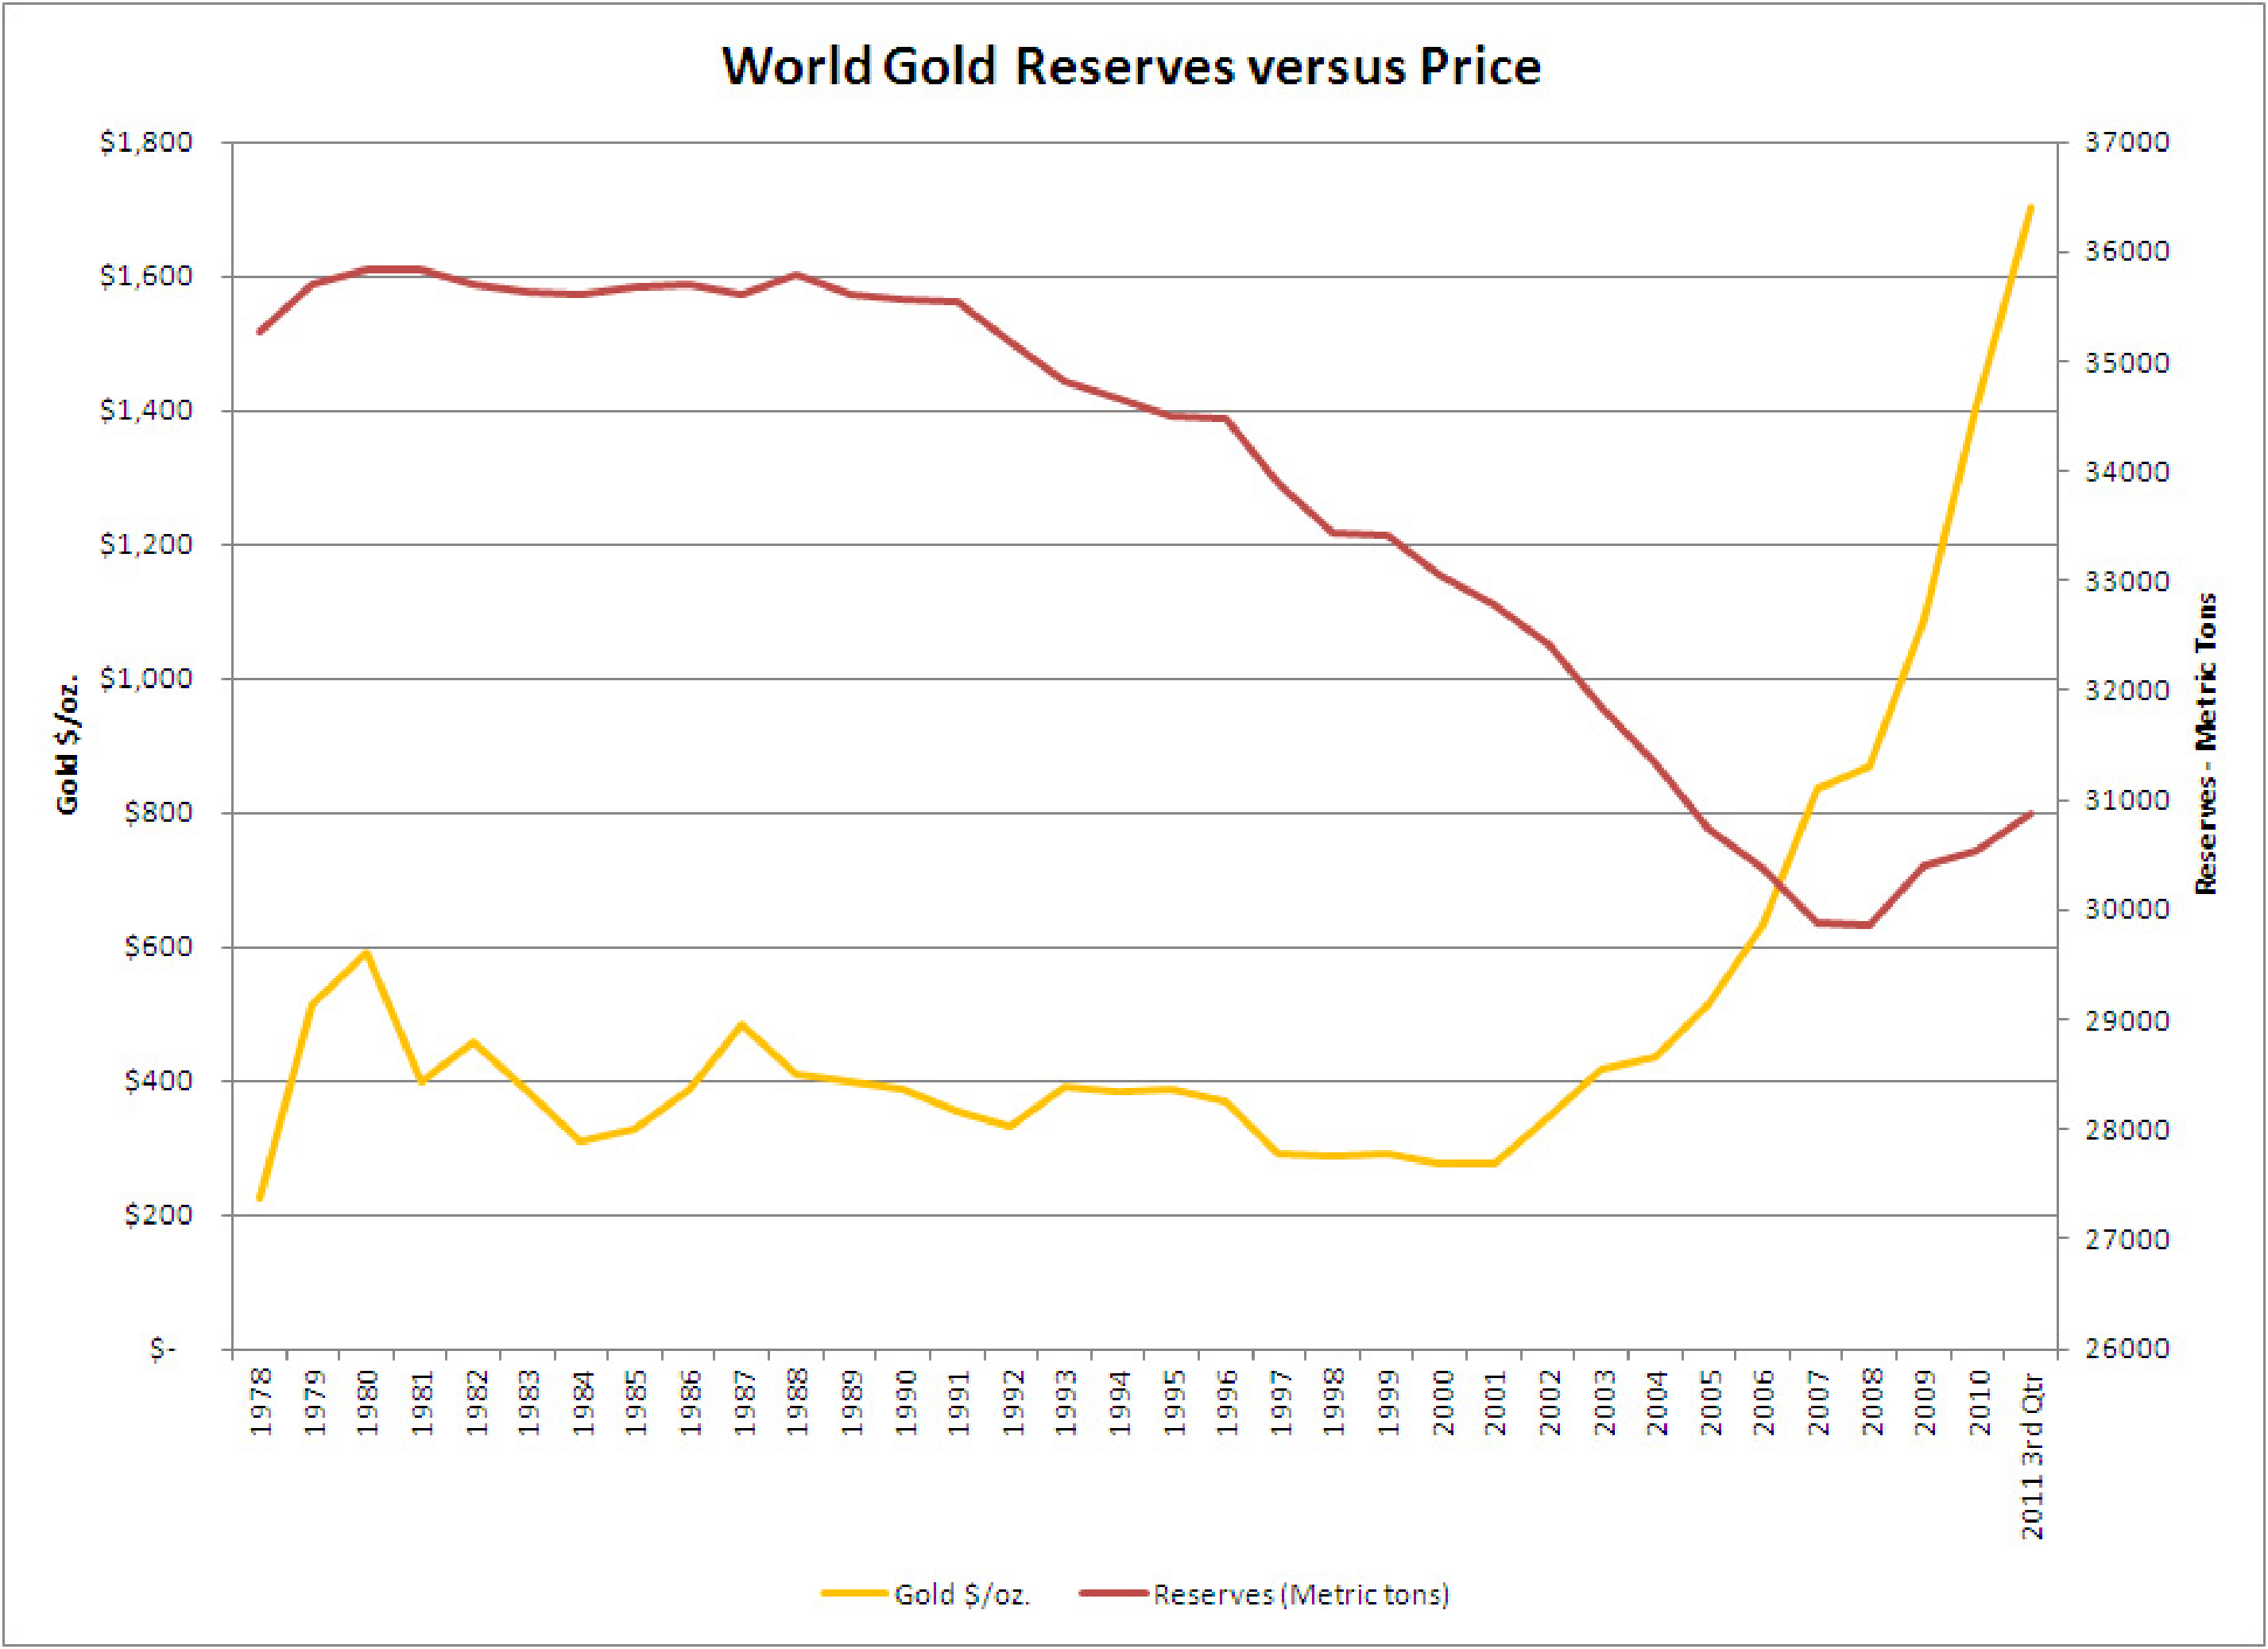 Central Bank Reserves versus Price